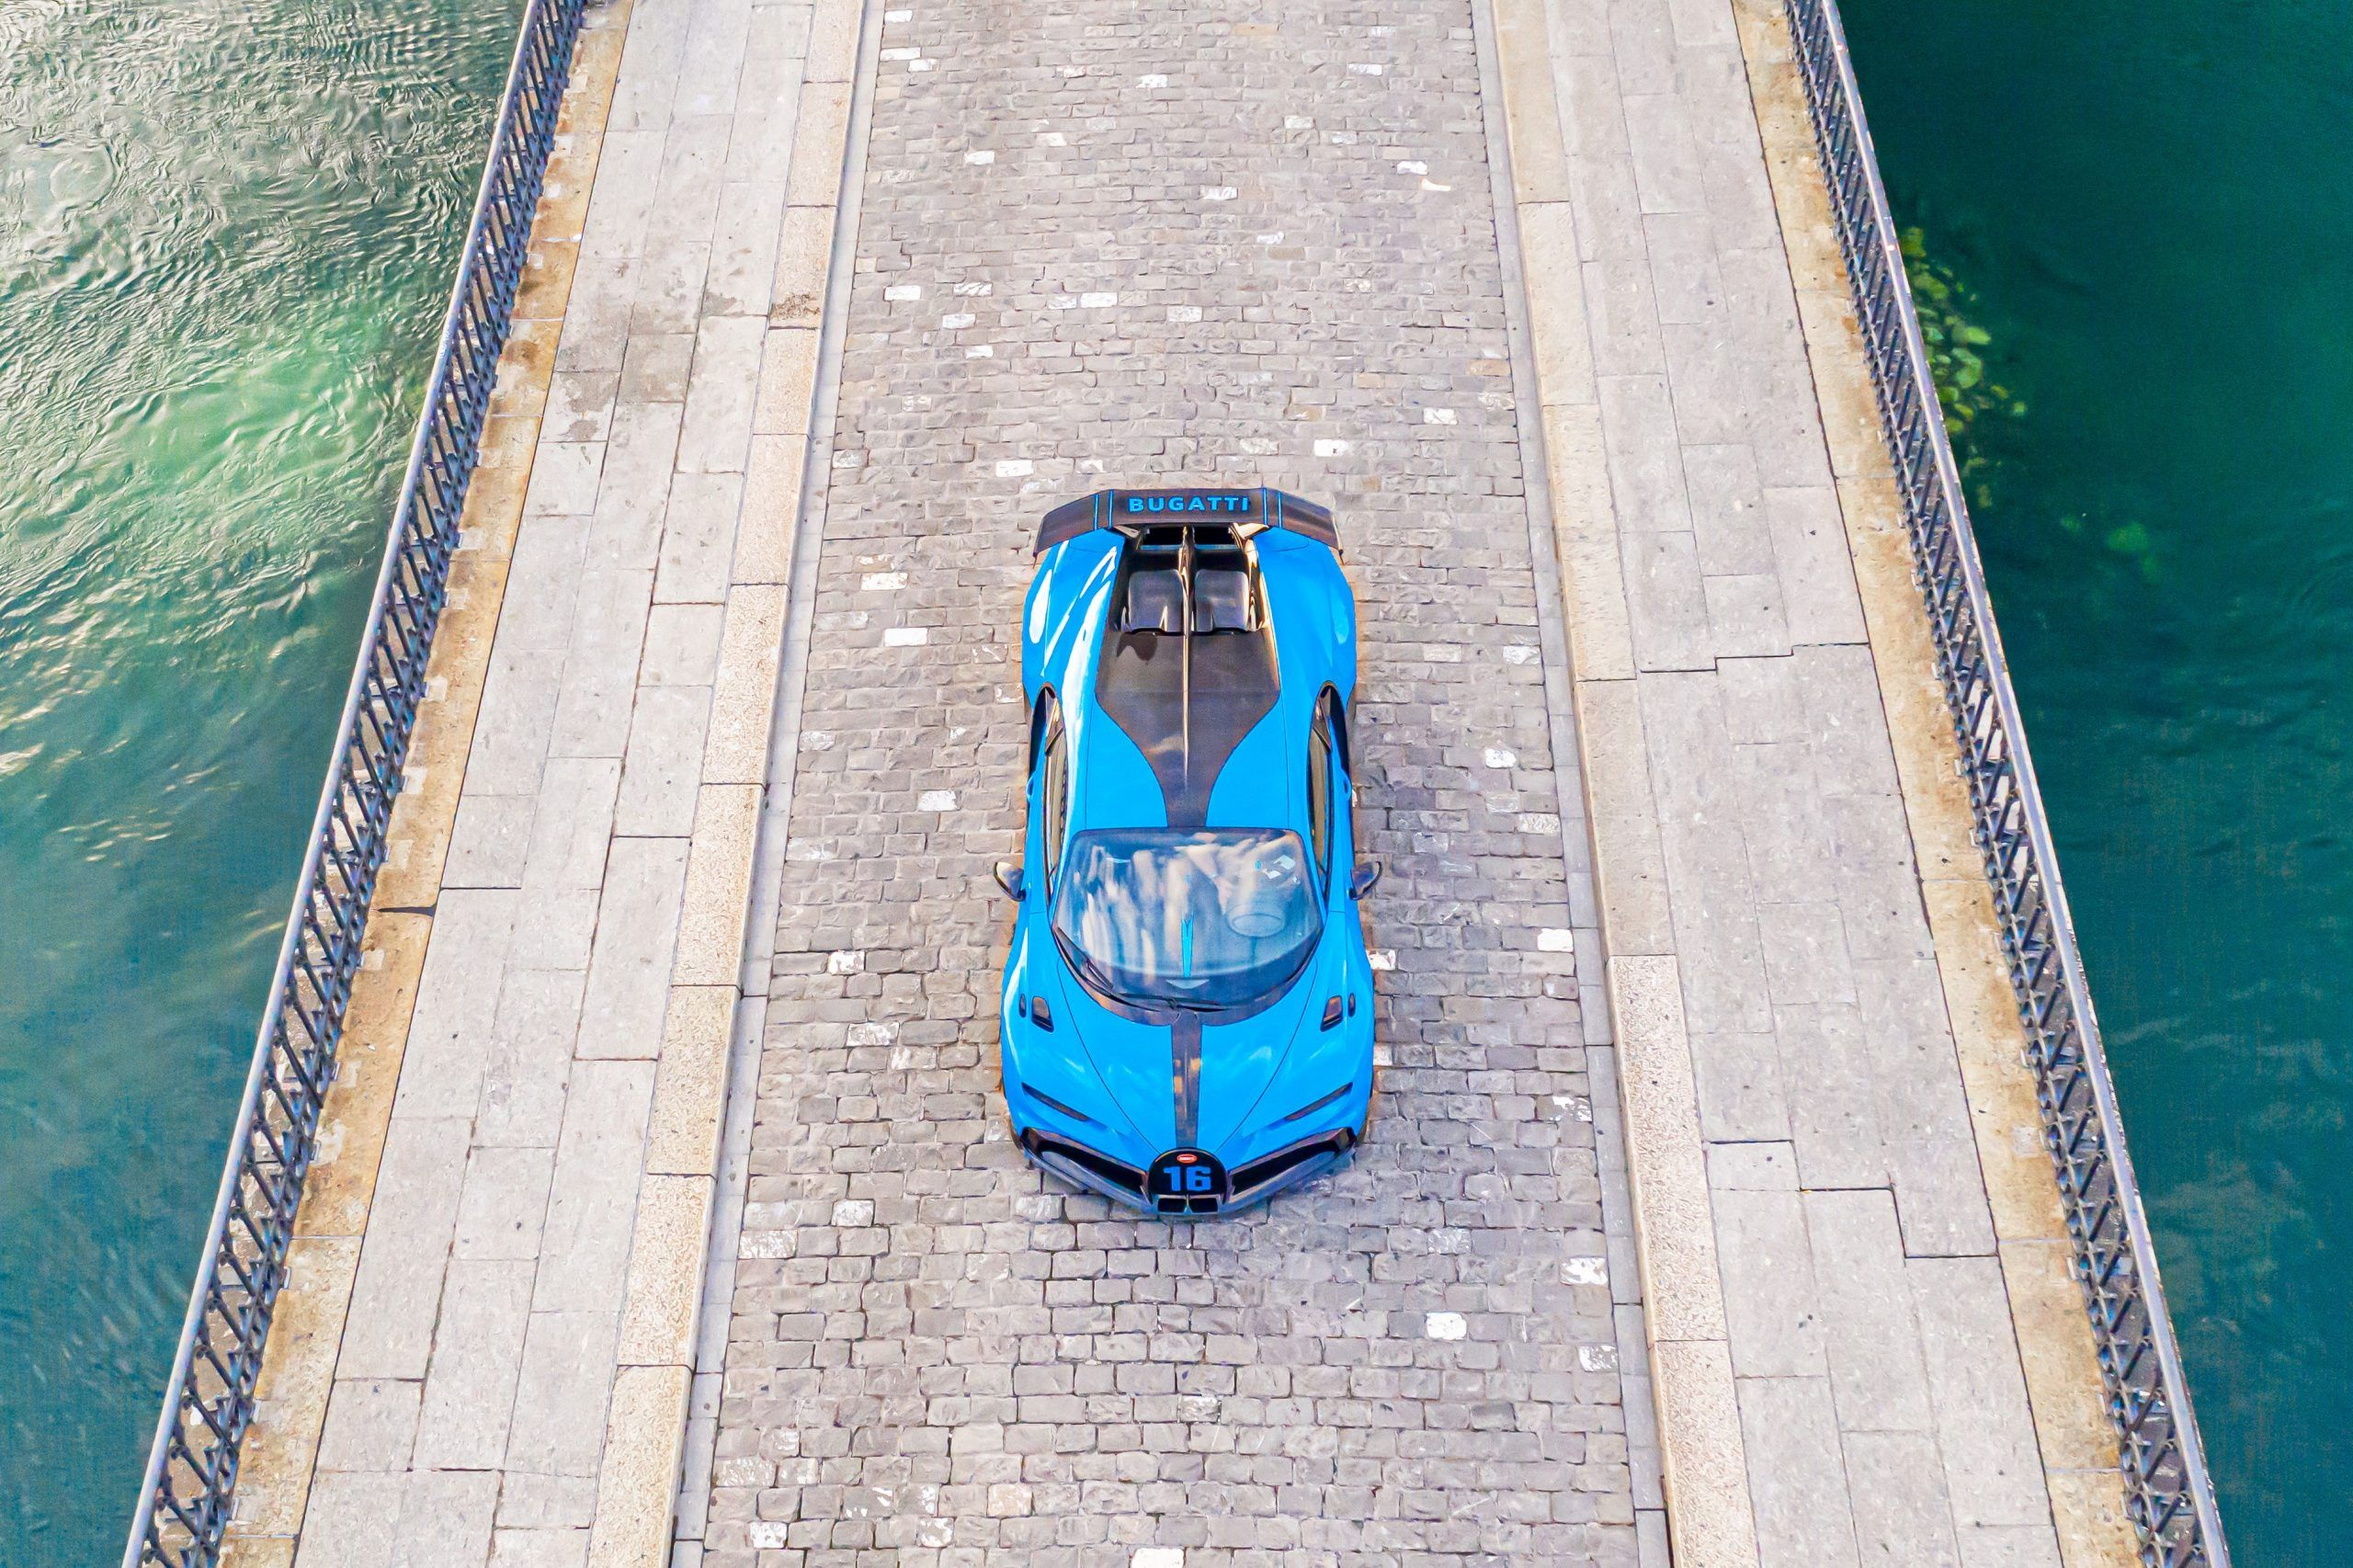 You Can Cool An Entire Apartment With The Air Conditioning System From A Bugatti Chiron Bugatti Chiron Air Conditioning System Bugatti